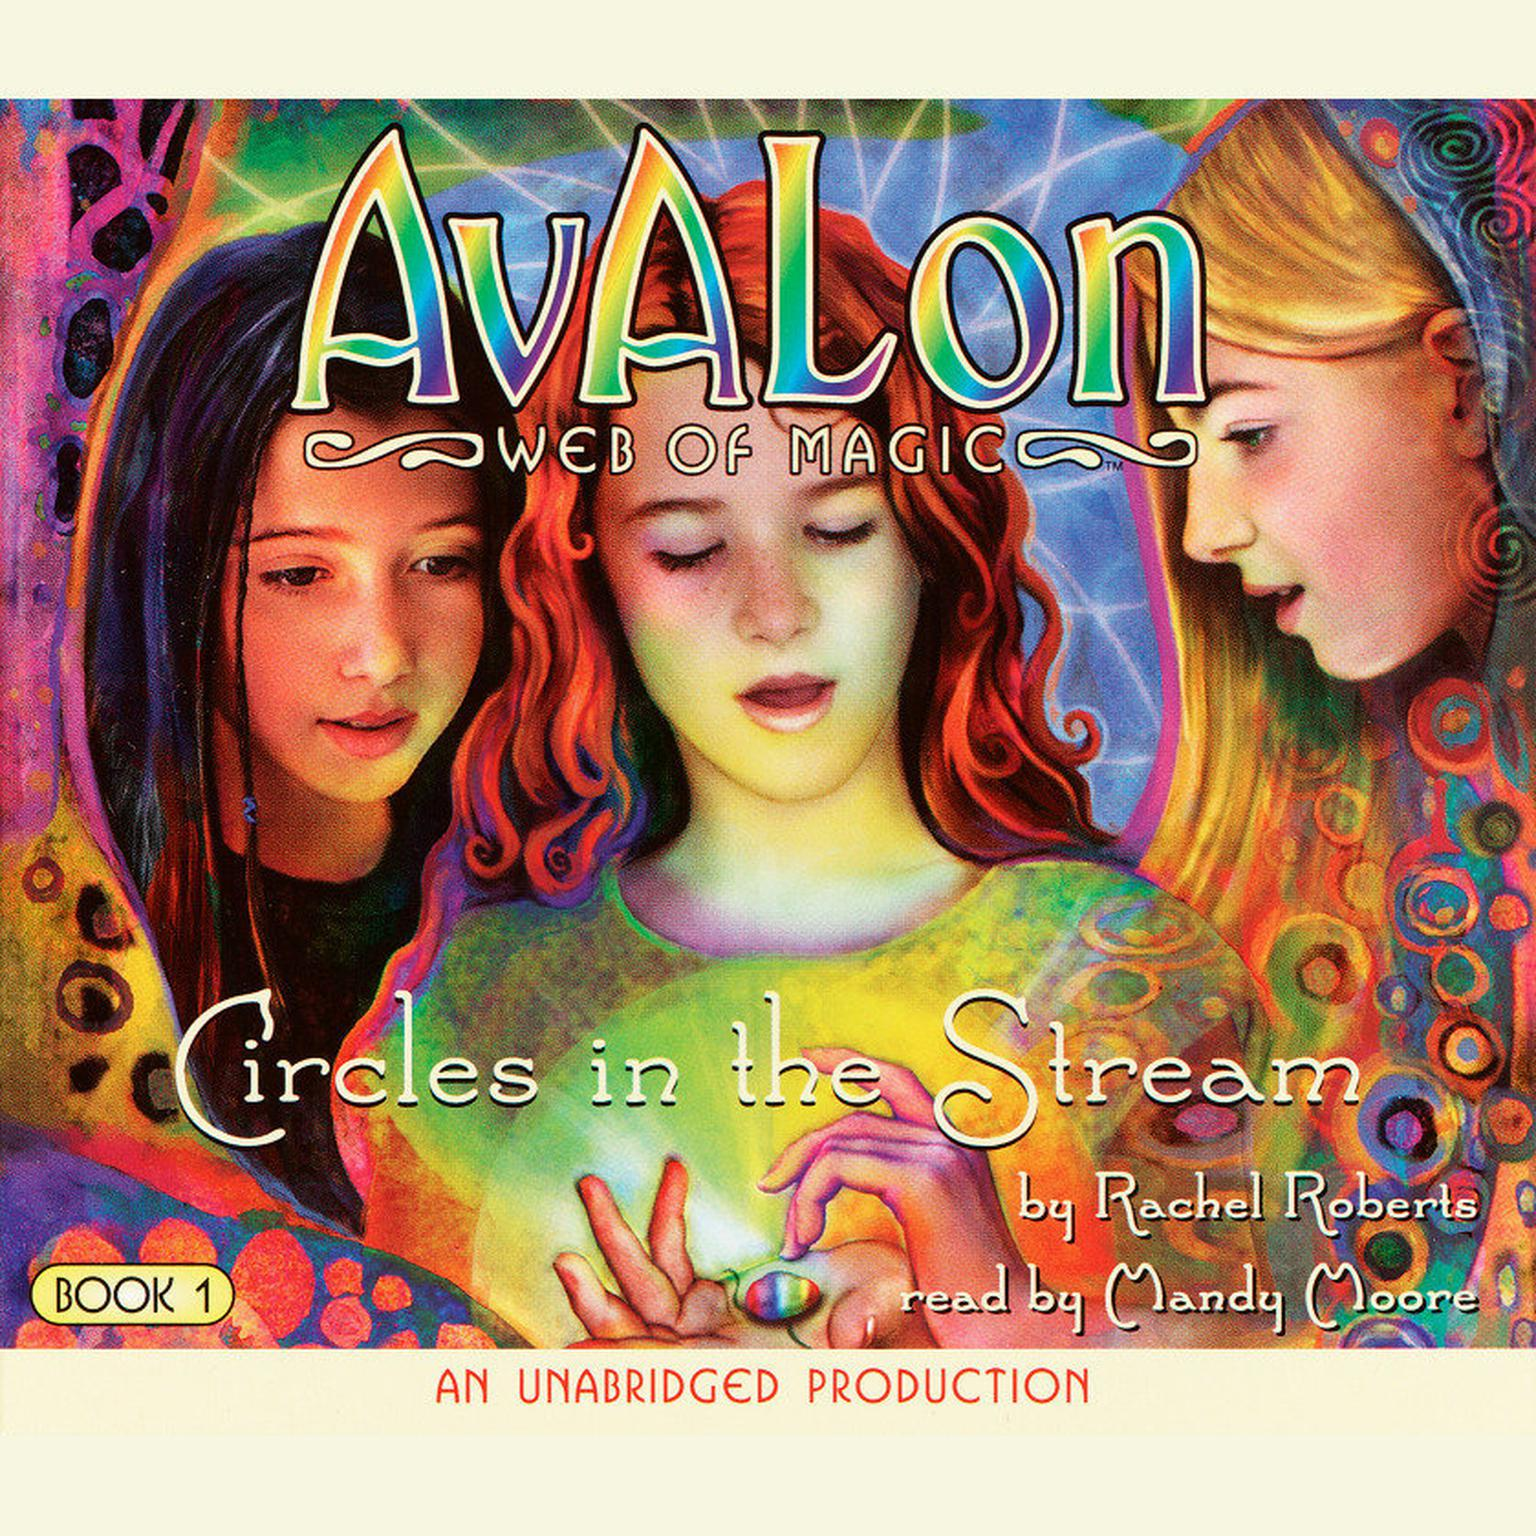 Printable Avalon Web of Magic Book 1: Circles in the Stream Audiobook Cover Art